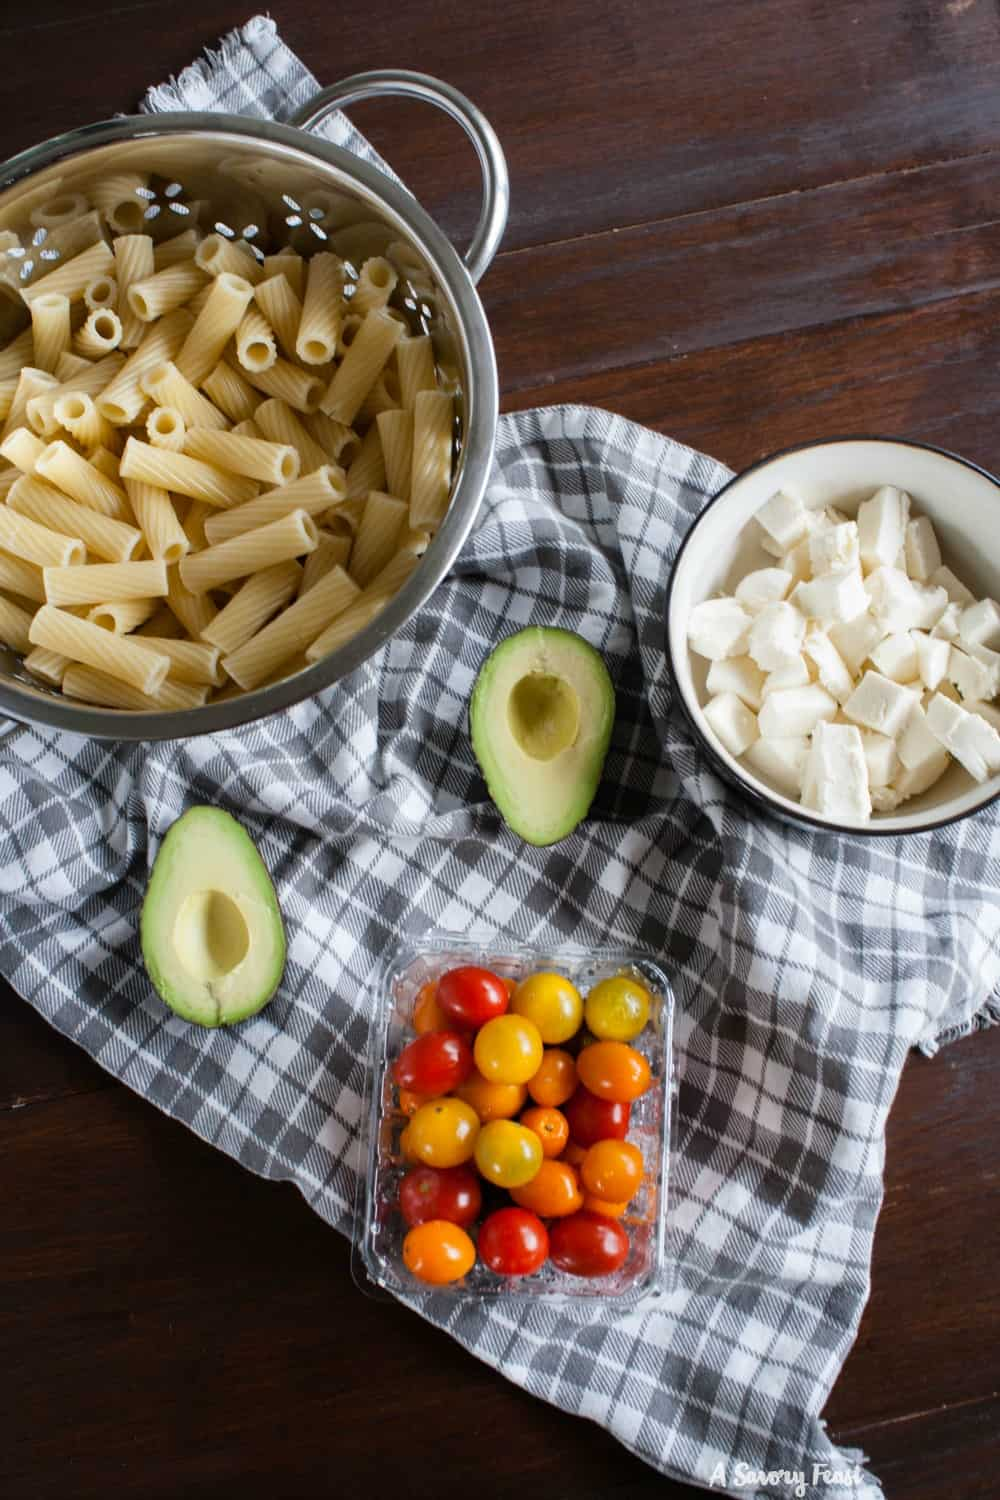 Fresh ingredients for a Summer Tomato and Avocado Pasta Salad.